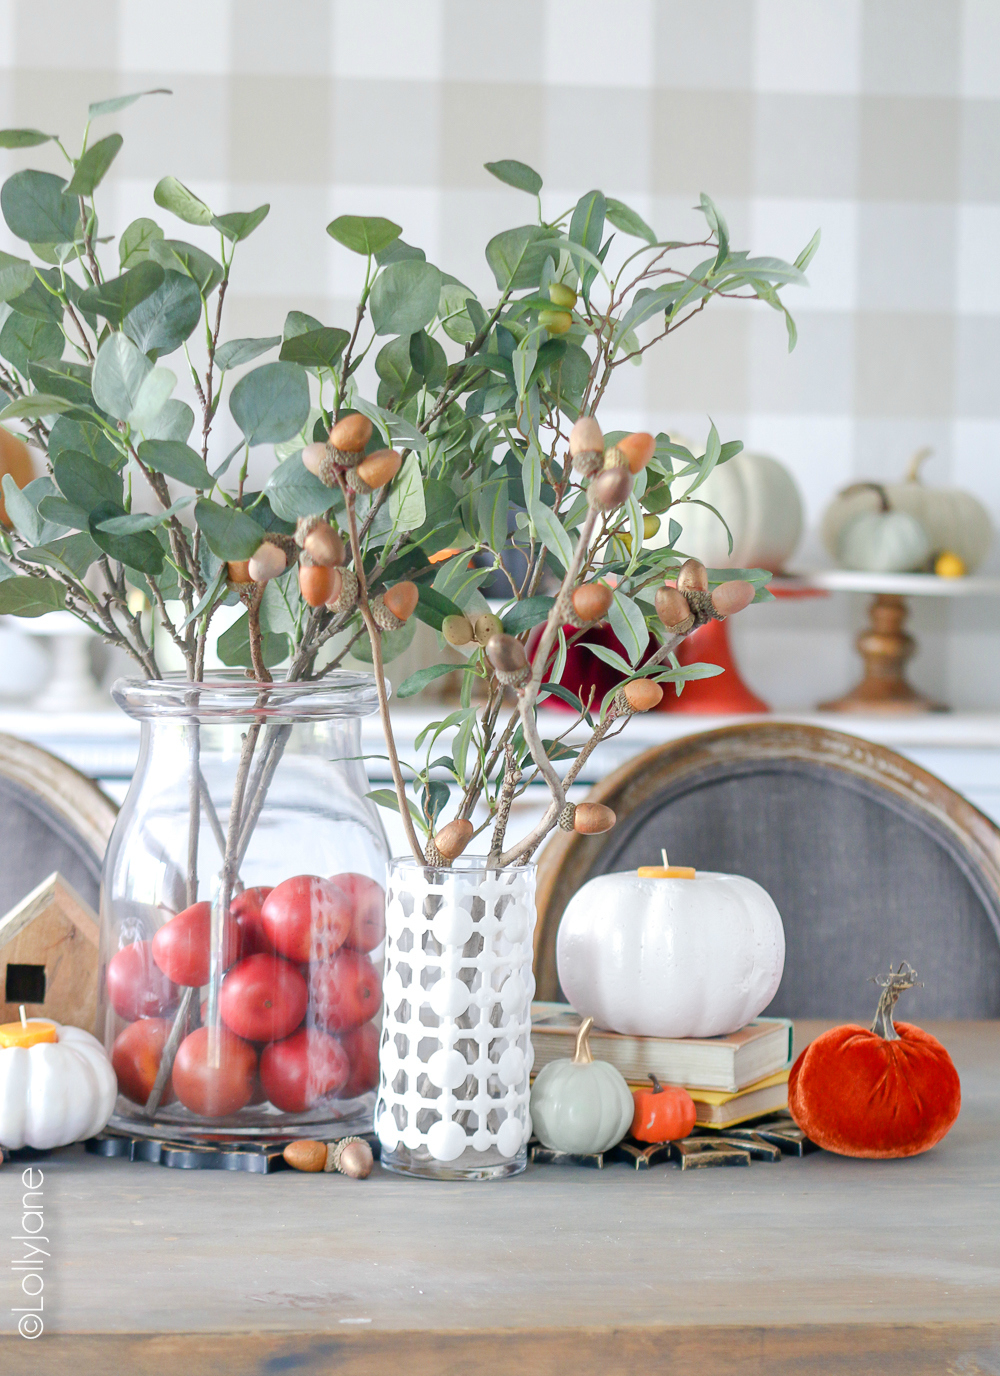 Get a high end look of fall decor without spending a fortune! Check out these crazy creative DIY Fall Decor from items from the DOLLAR STORE! WOOOW! #diy #falldecorations #fall